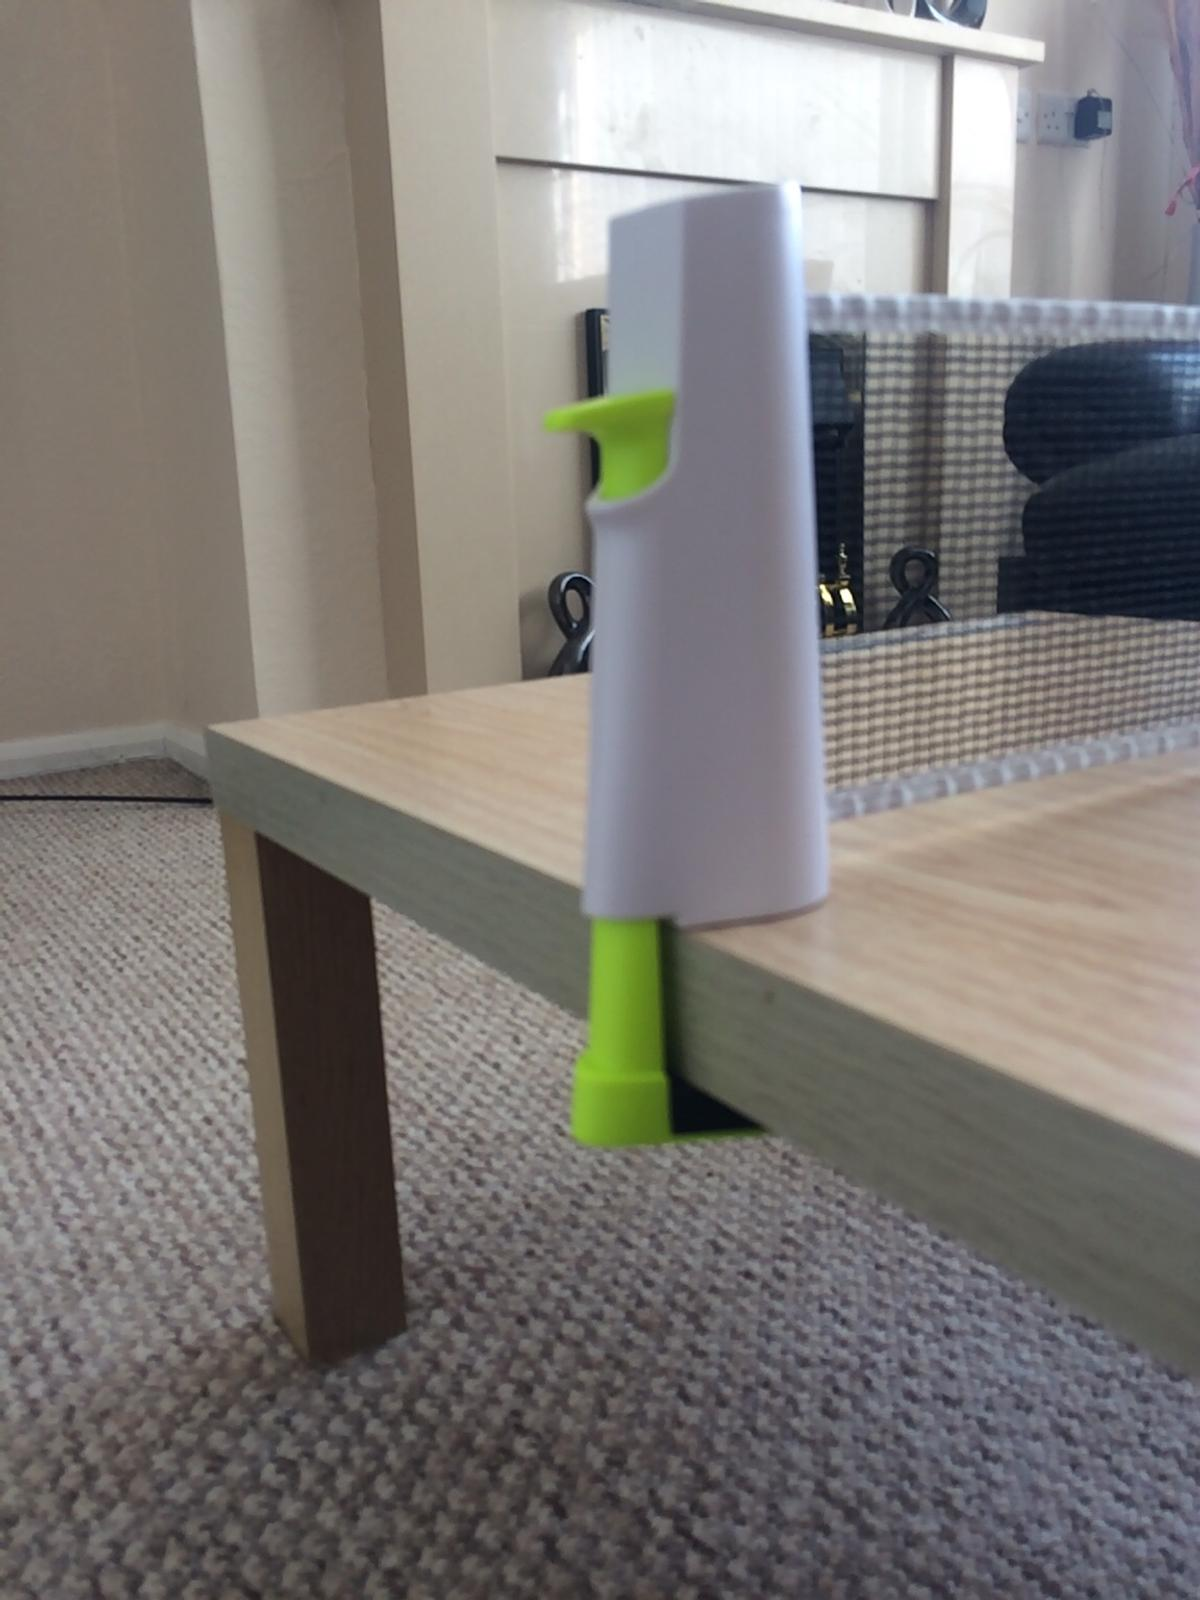 As new artengo table tennis net 200cm long depth of ends for table depths 9cm A good & sturdy piece of kit